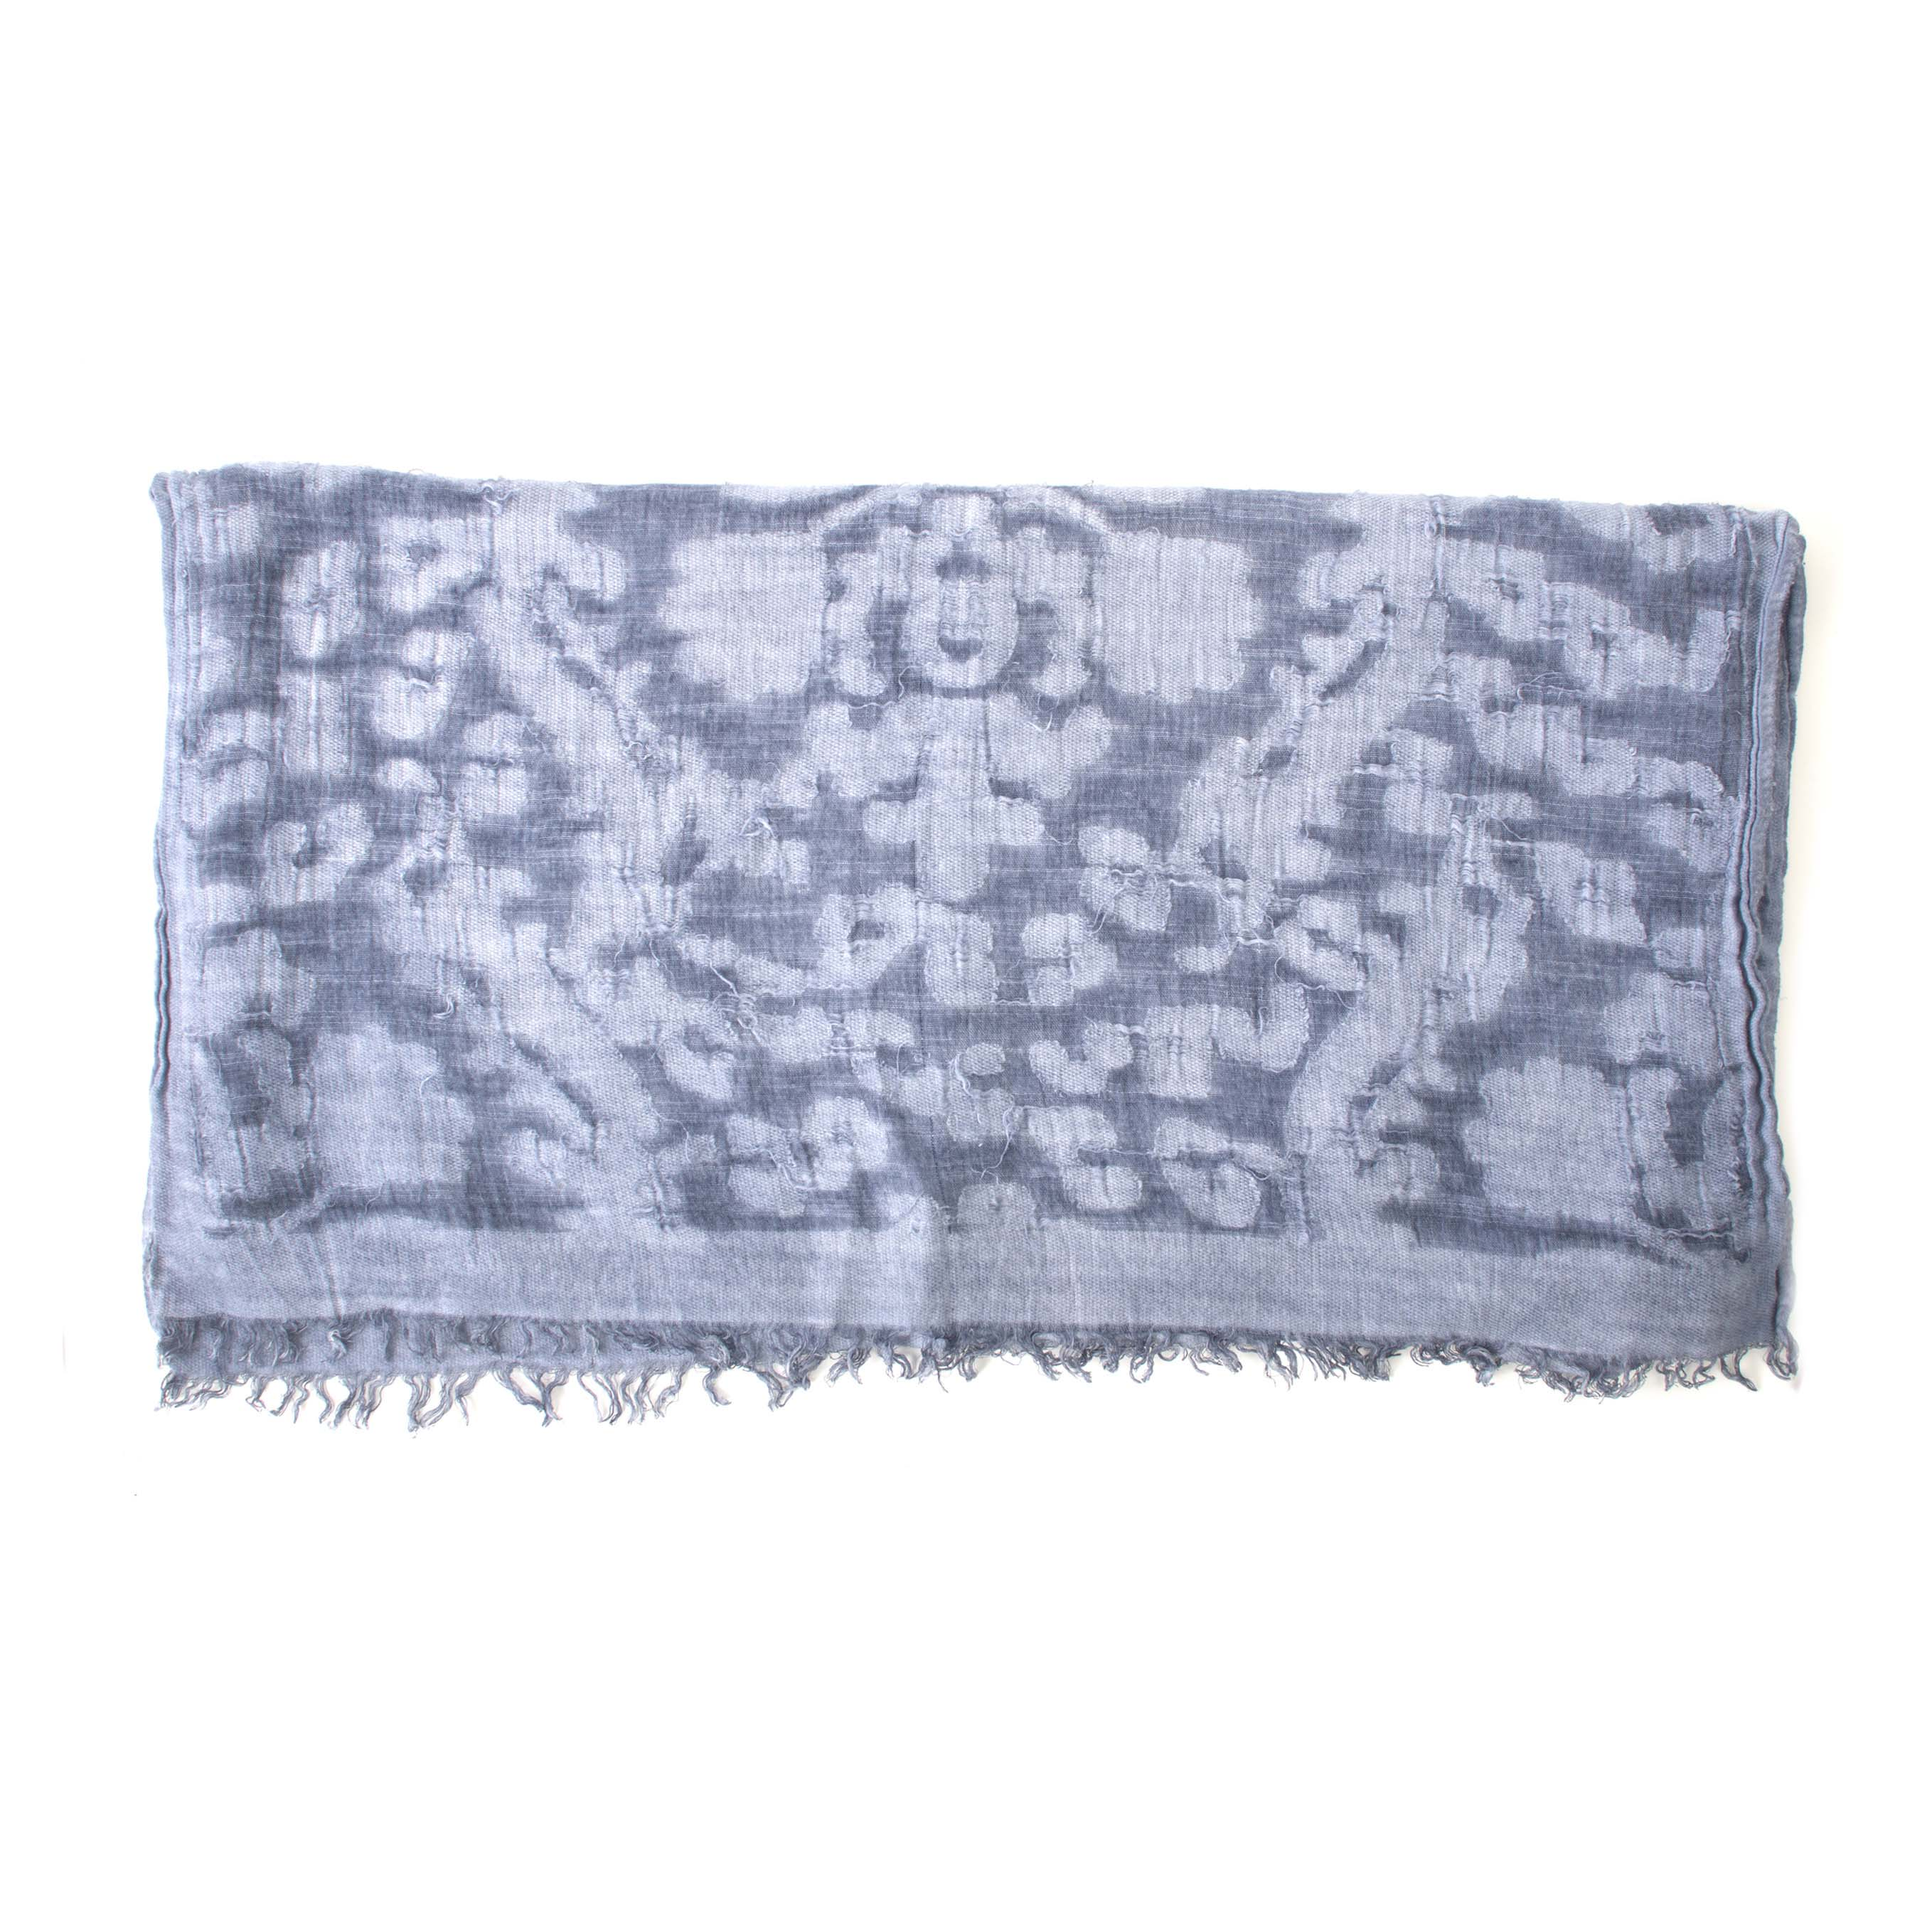 Blue with grey scarf, viscose/cotton blend